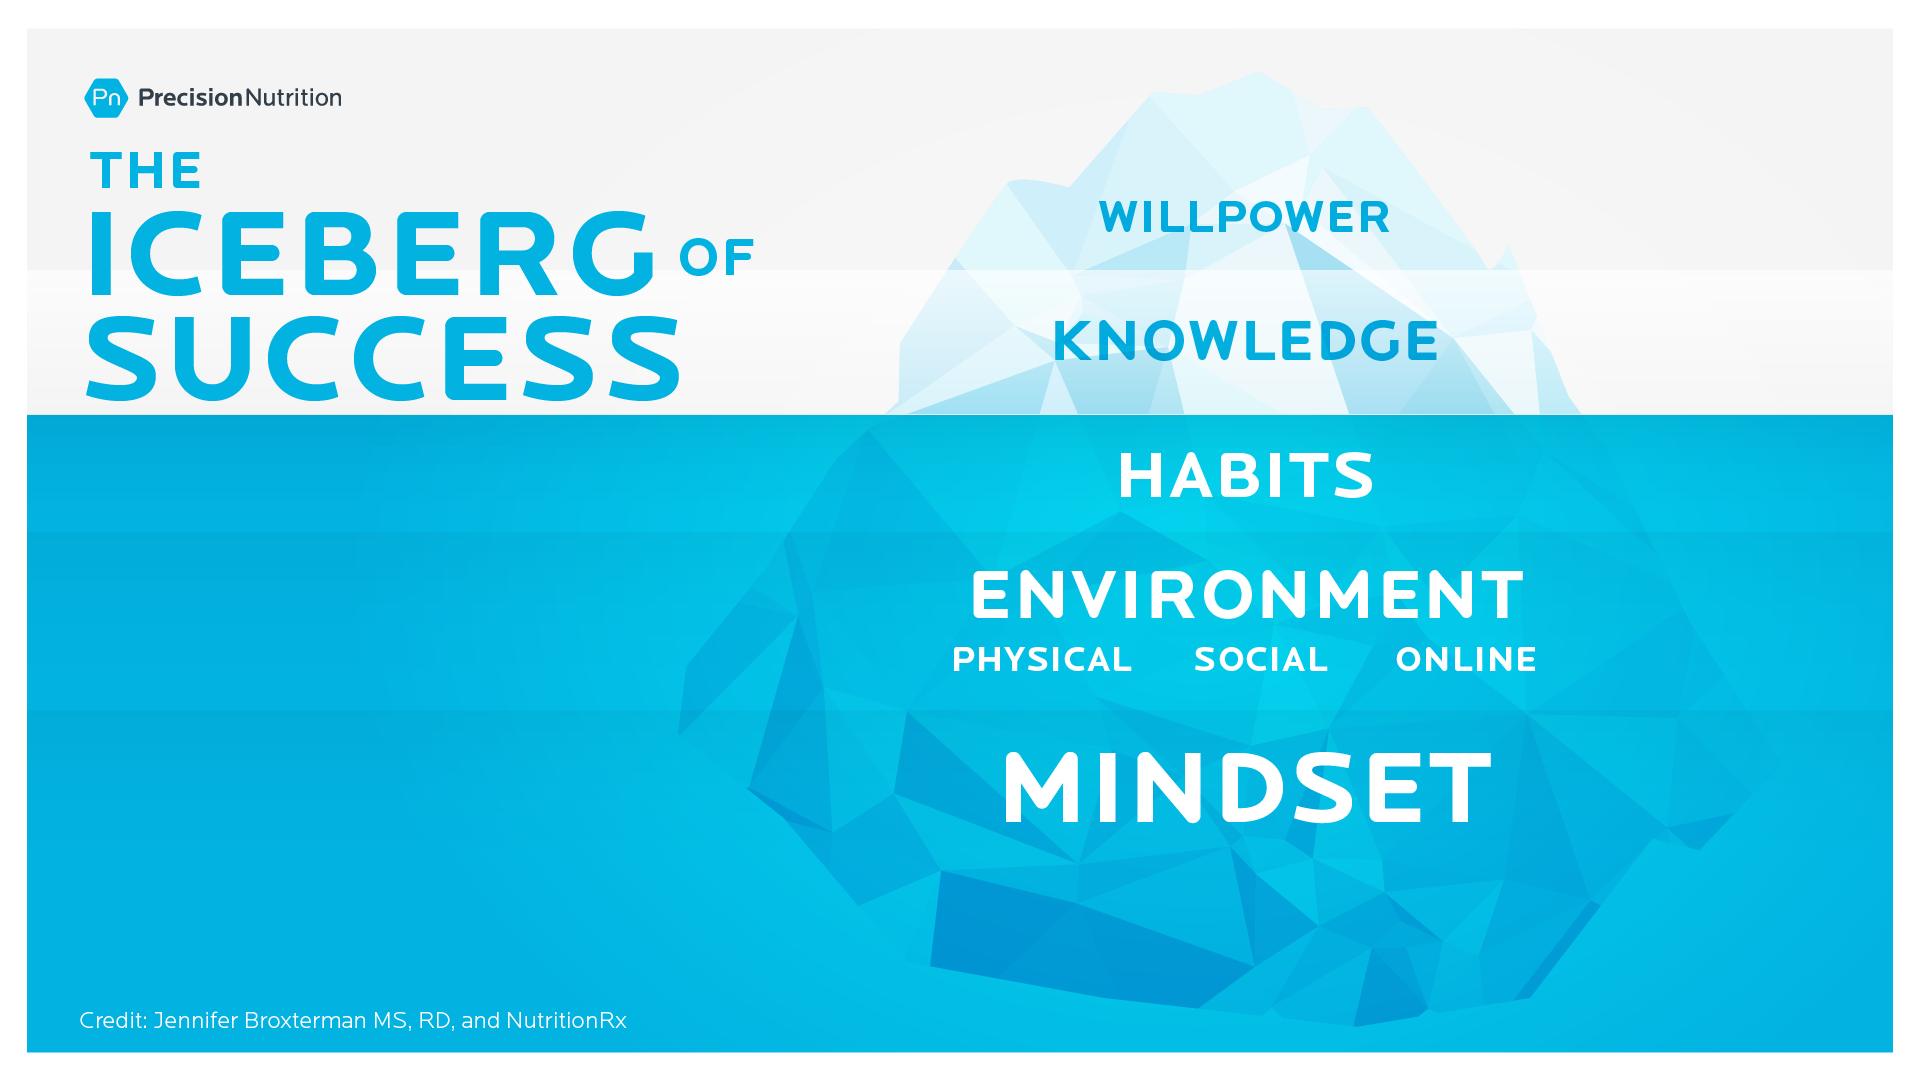 An illustration of the iceberg of success. The mentality, the environment, the habits are under the water and the knowledge and the will is above the water.